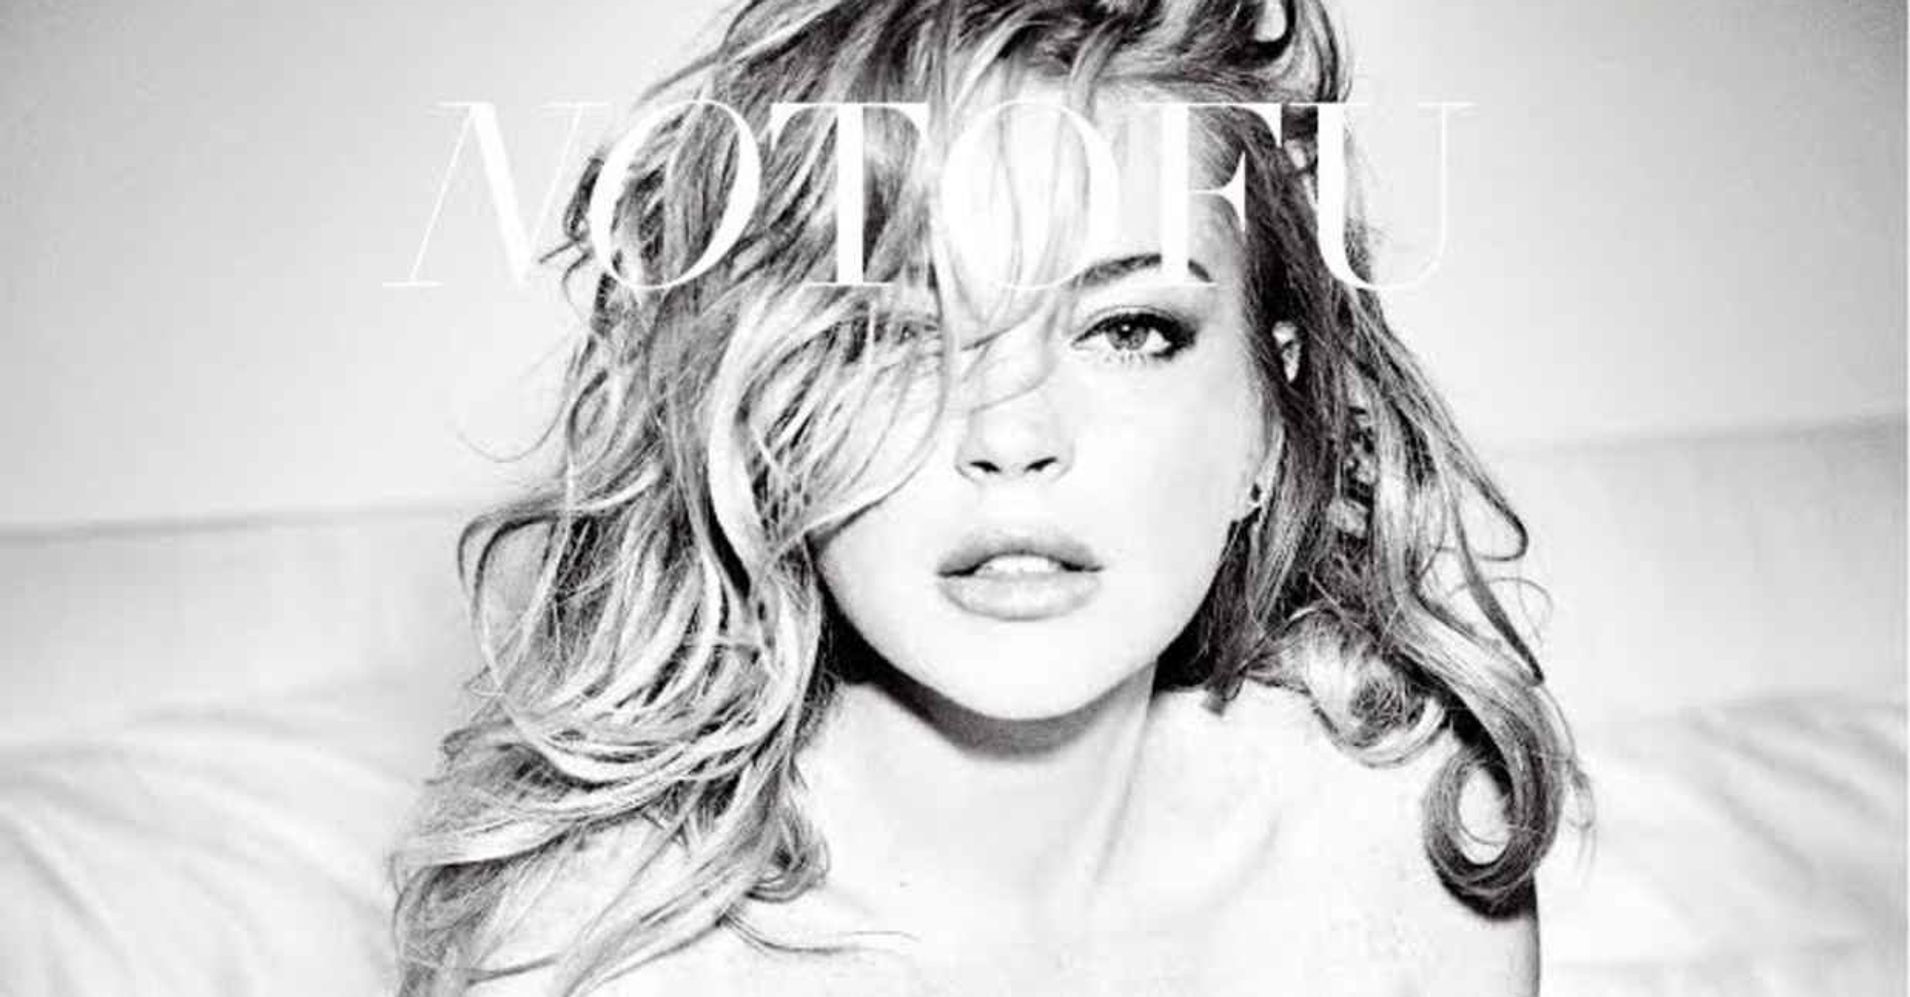 Lindsay Lohan Poses Nude In Bed For No Tofu Magazine Cover ...